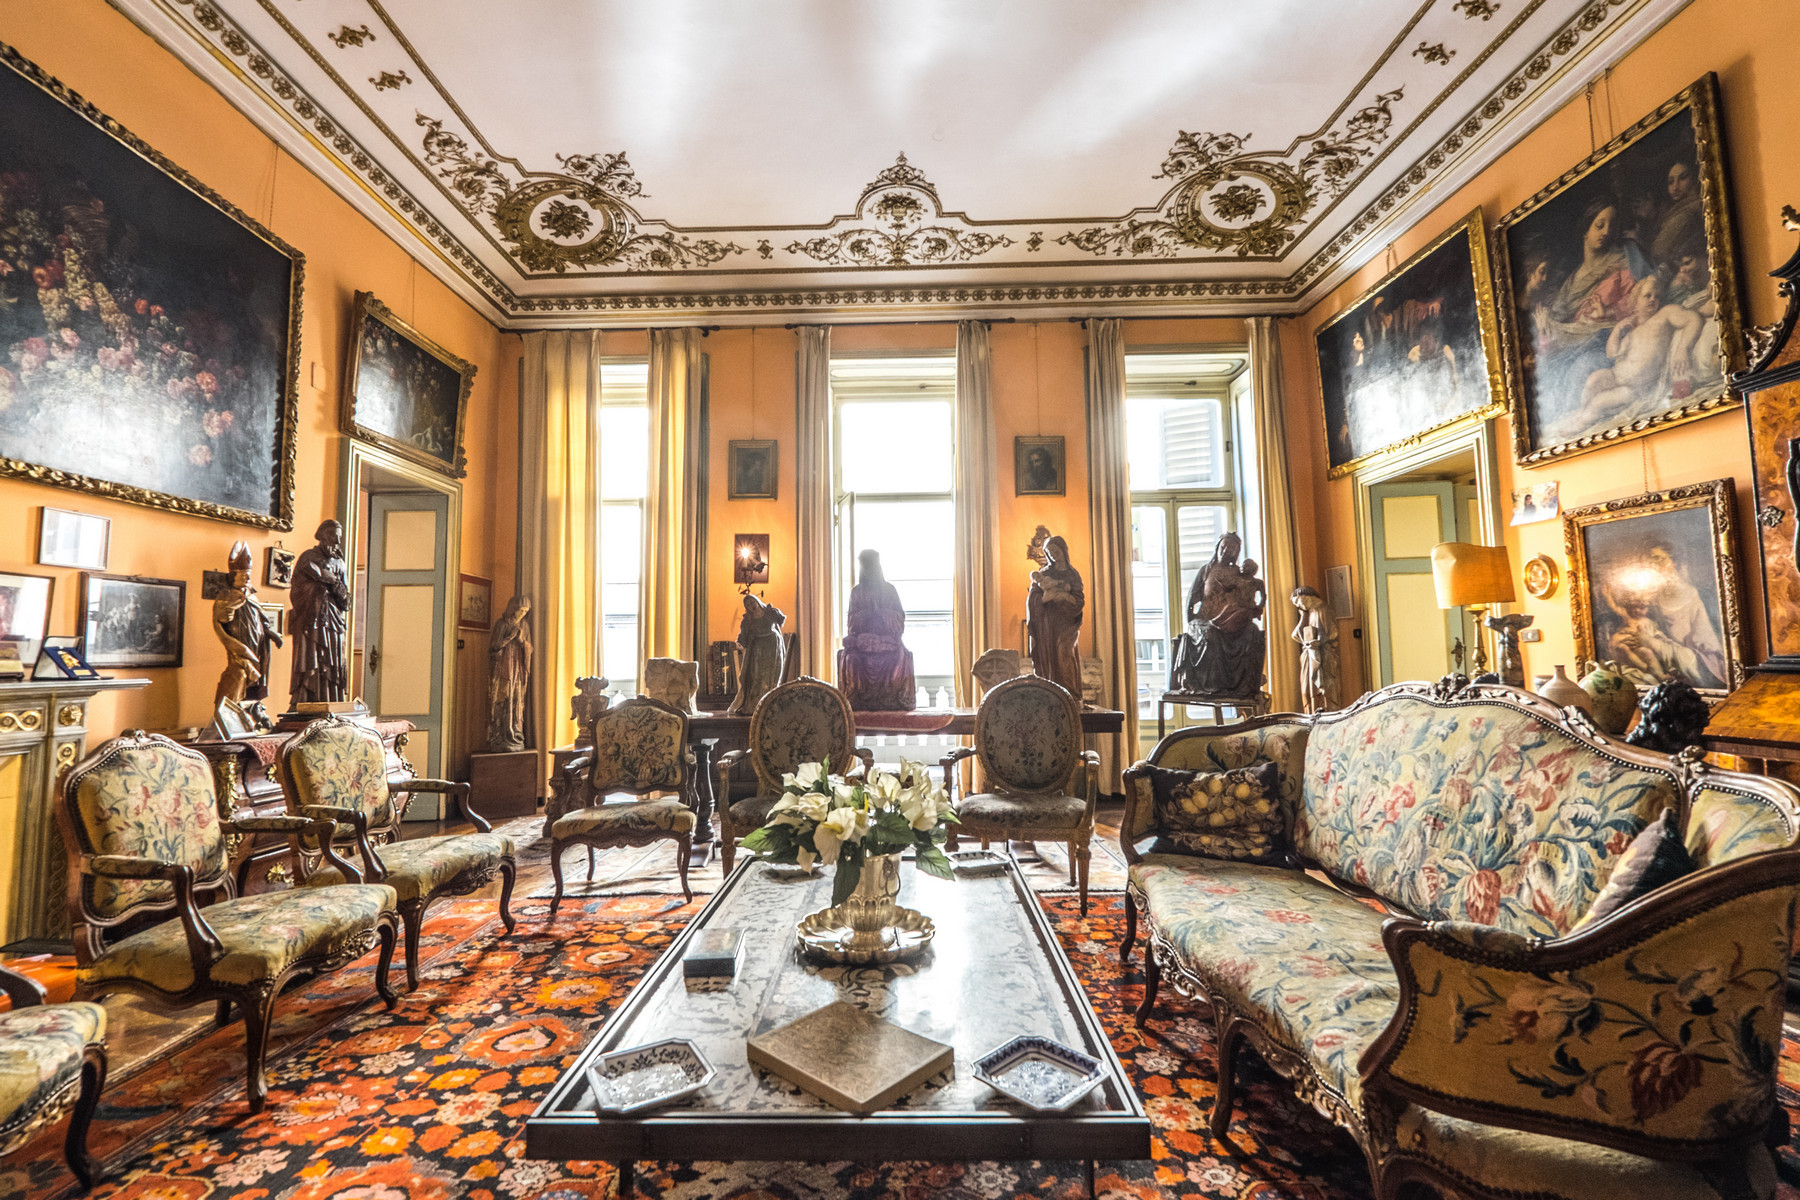 Apartment for Sale at Gorgeous apartment in historical Palazzo Via Principe Amedeo Torino, Turin, 10123 Italy